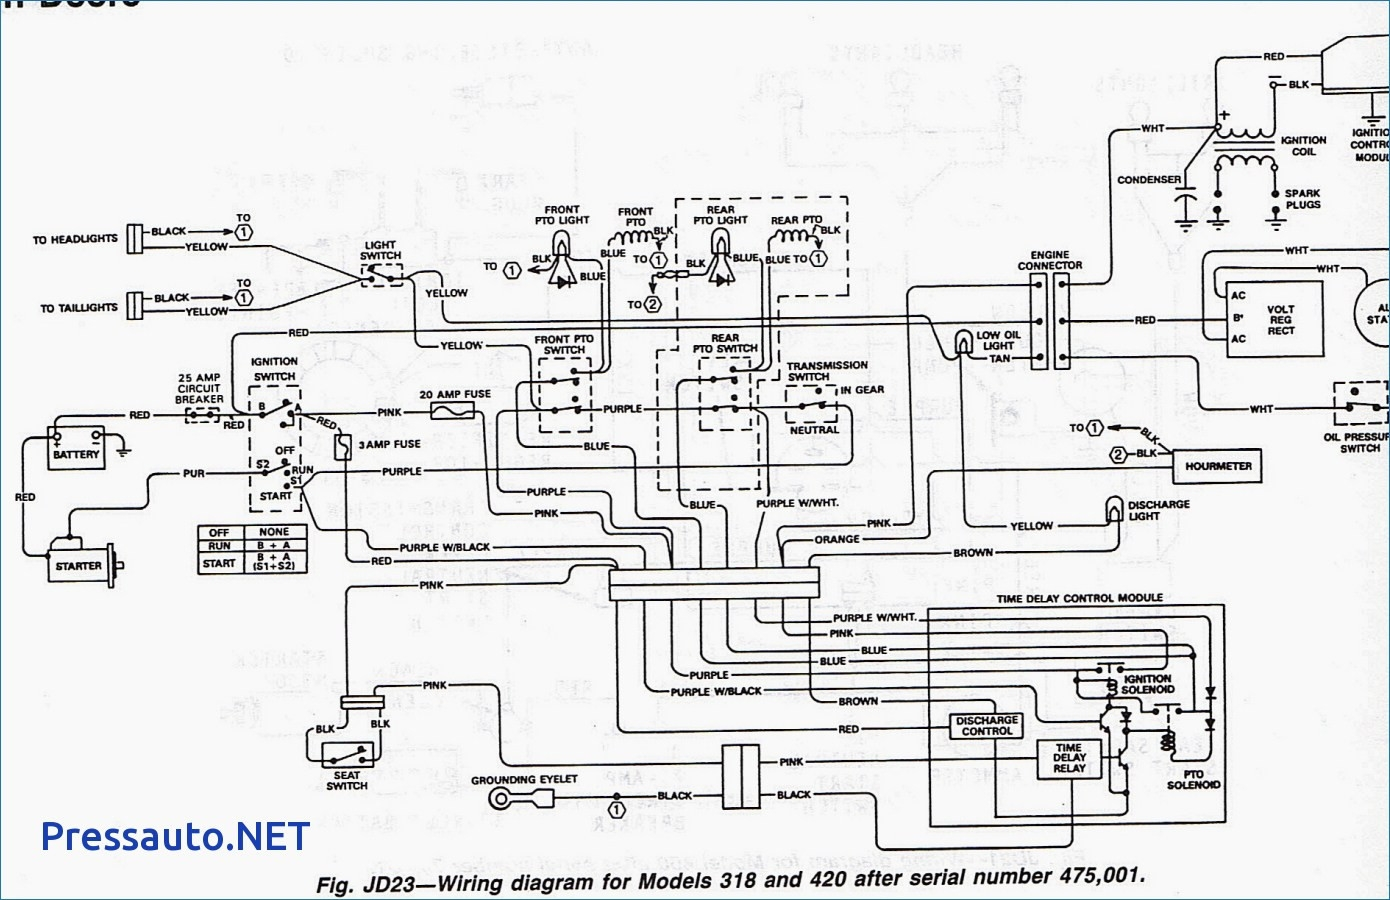 john deere 2150 wiring diagram repair manual John Deere 110 Wiring Diagram